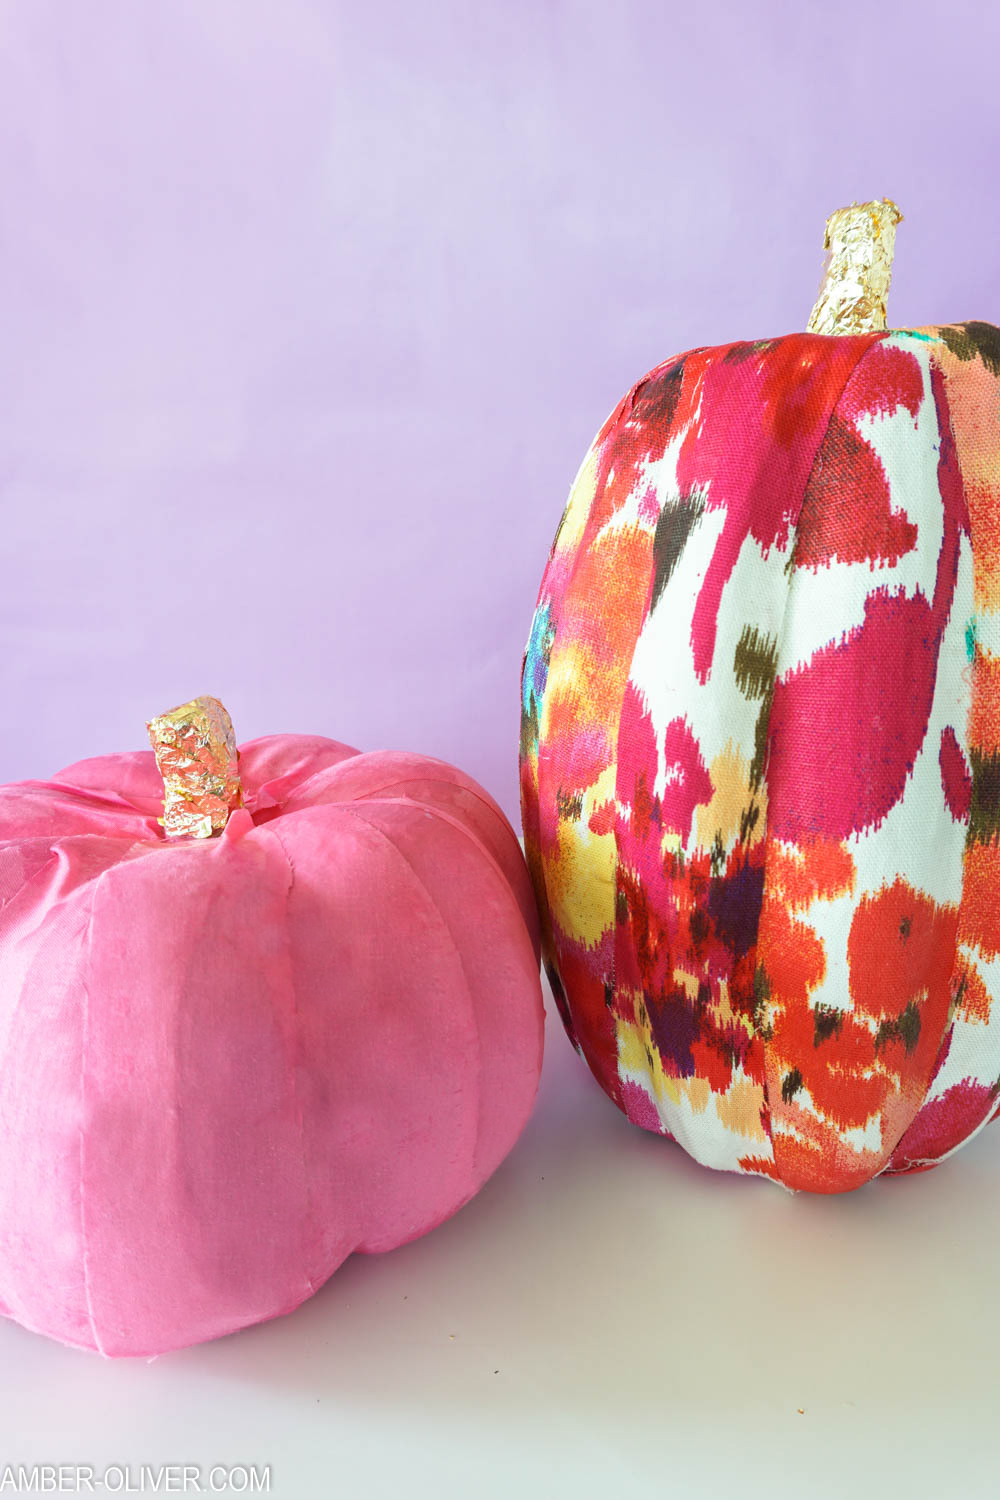 cardboard pumpkins covered in colorful fabric